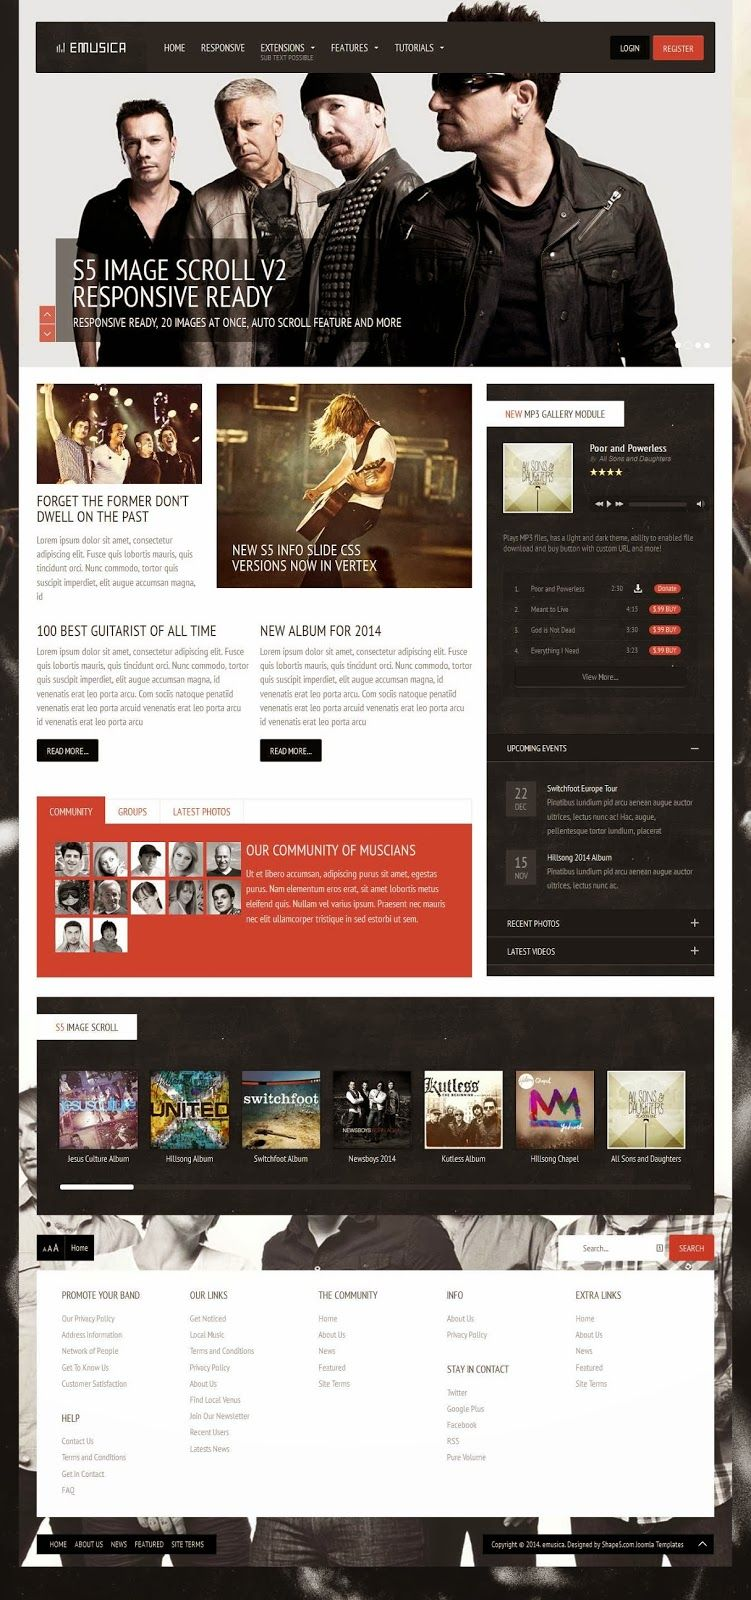 If you are looking to revamp your band's website or start